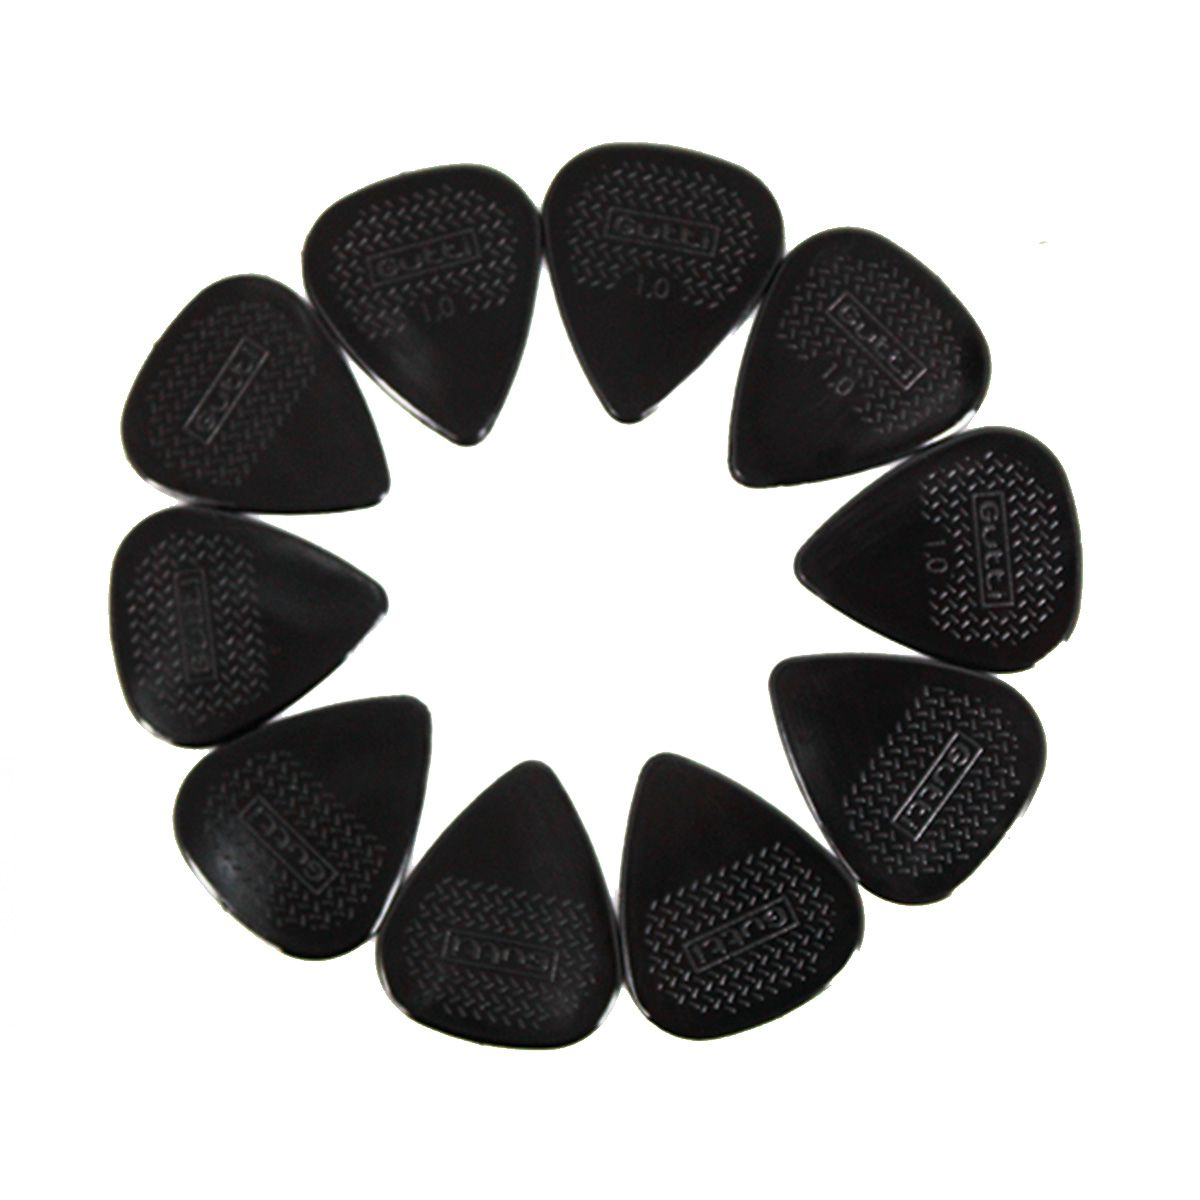 Kit 10 Palhetas Violão Standard ultra Grip 1MM Nylon Black